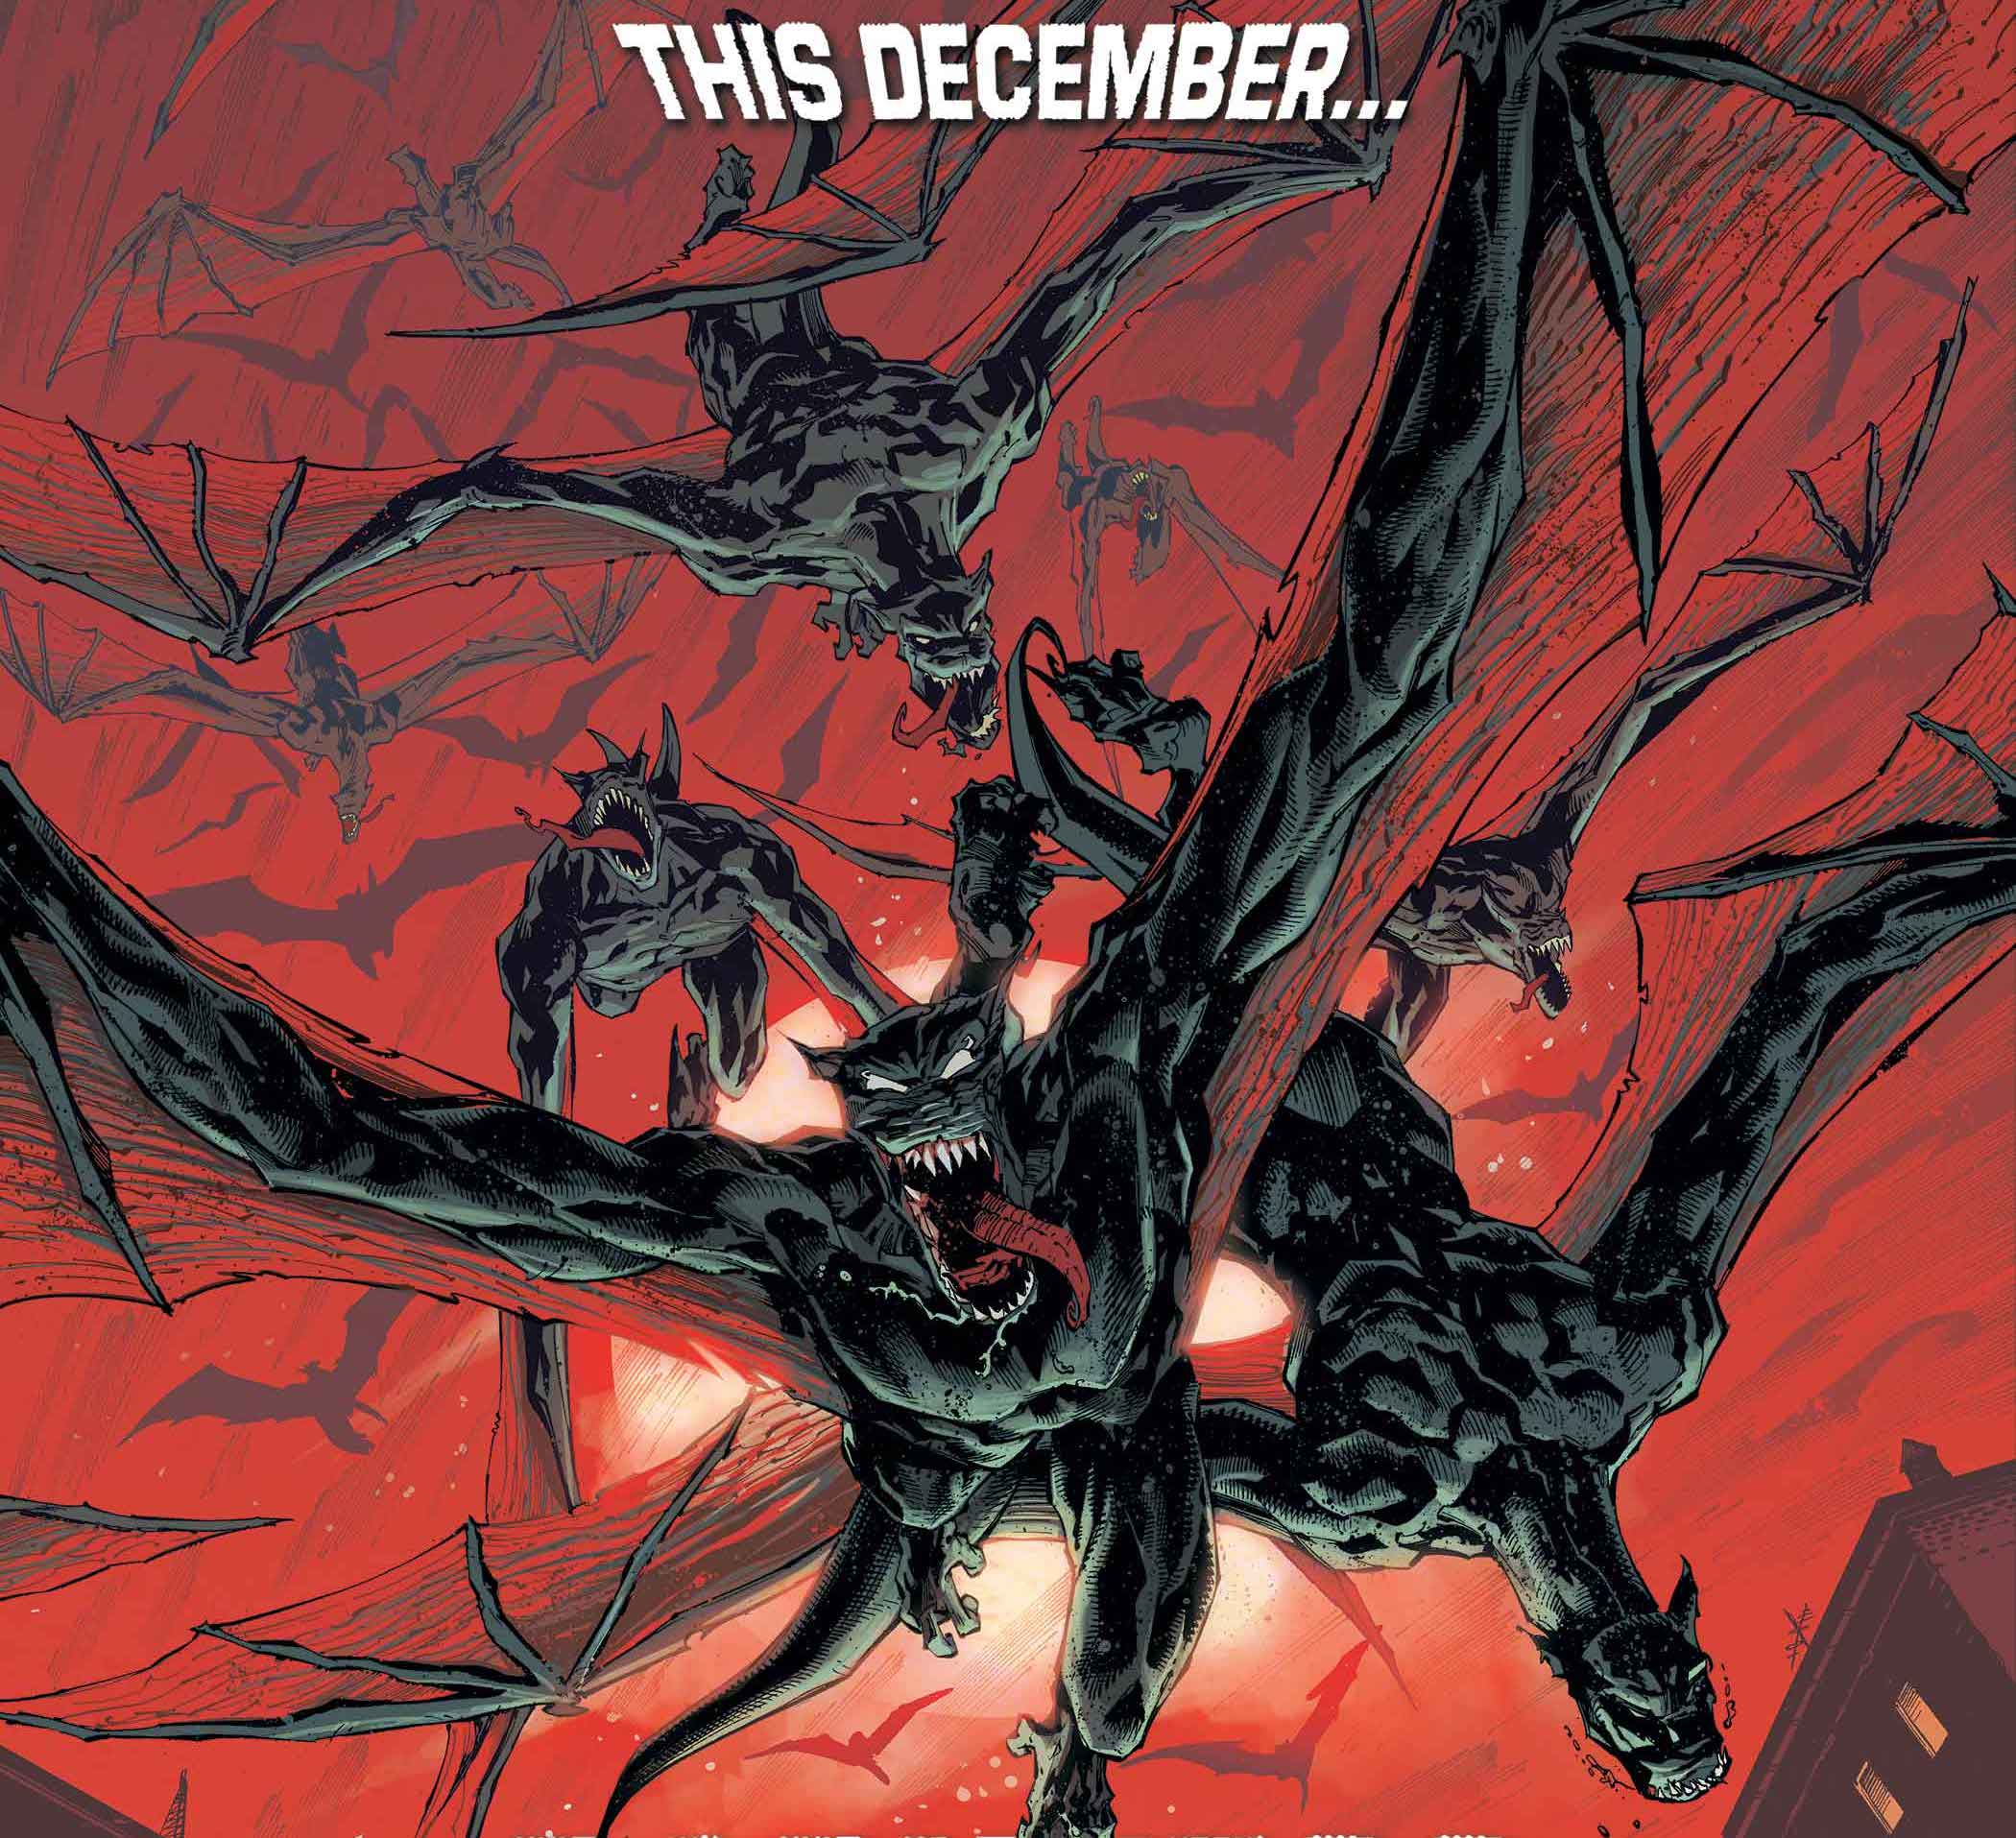 Marvel teases 'King in Black' with a monster Ryan Stegman cover